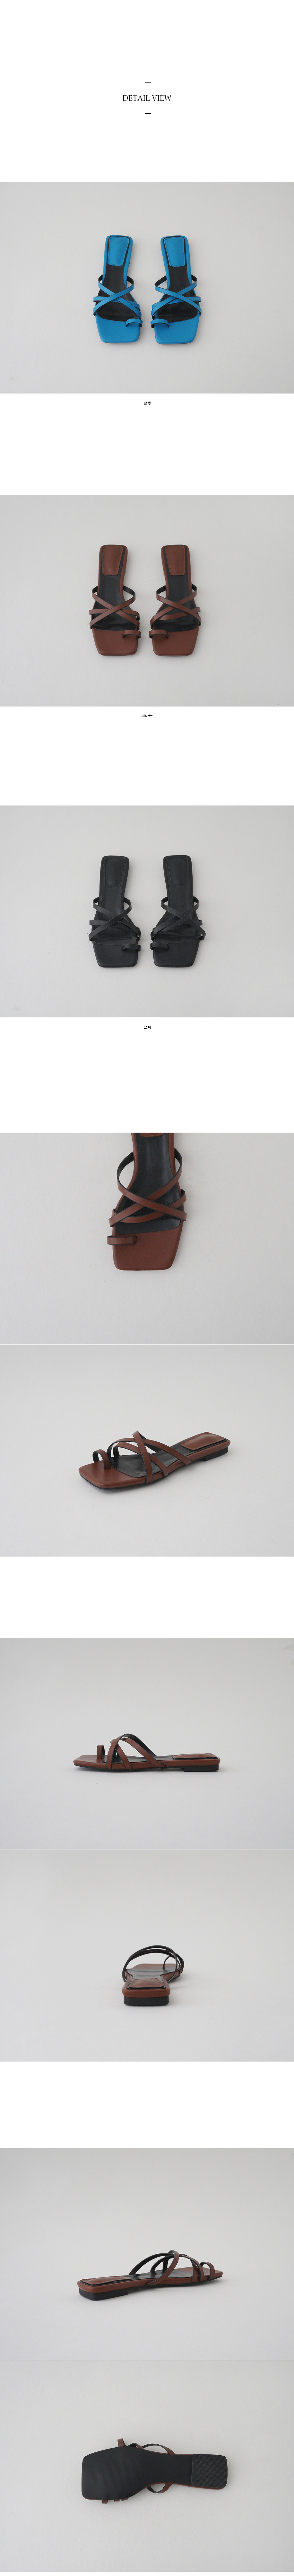 square toe cross strap slipper